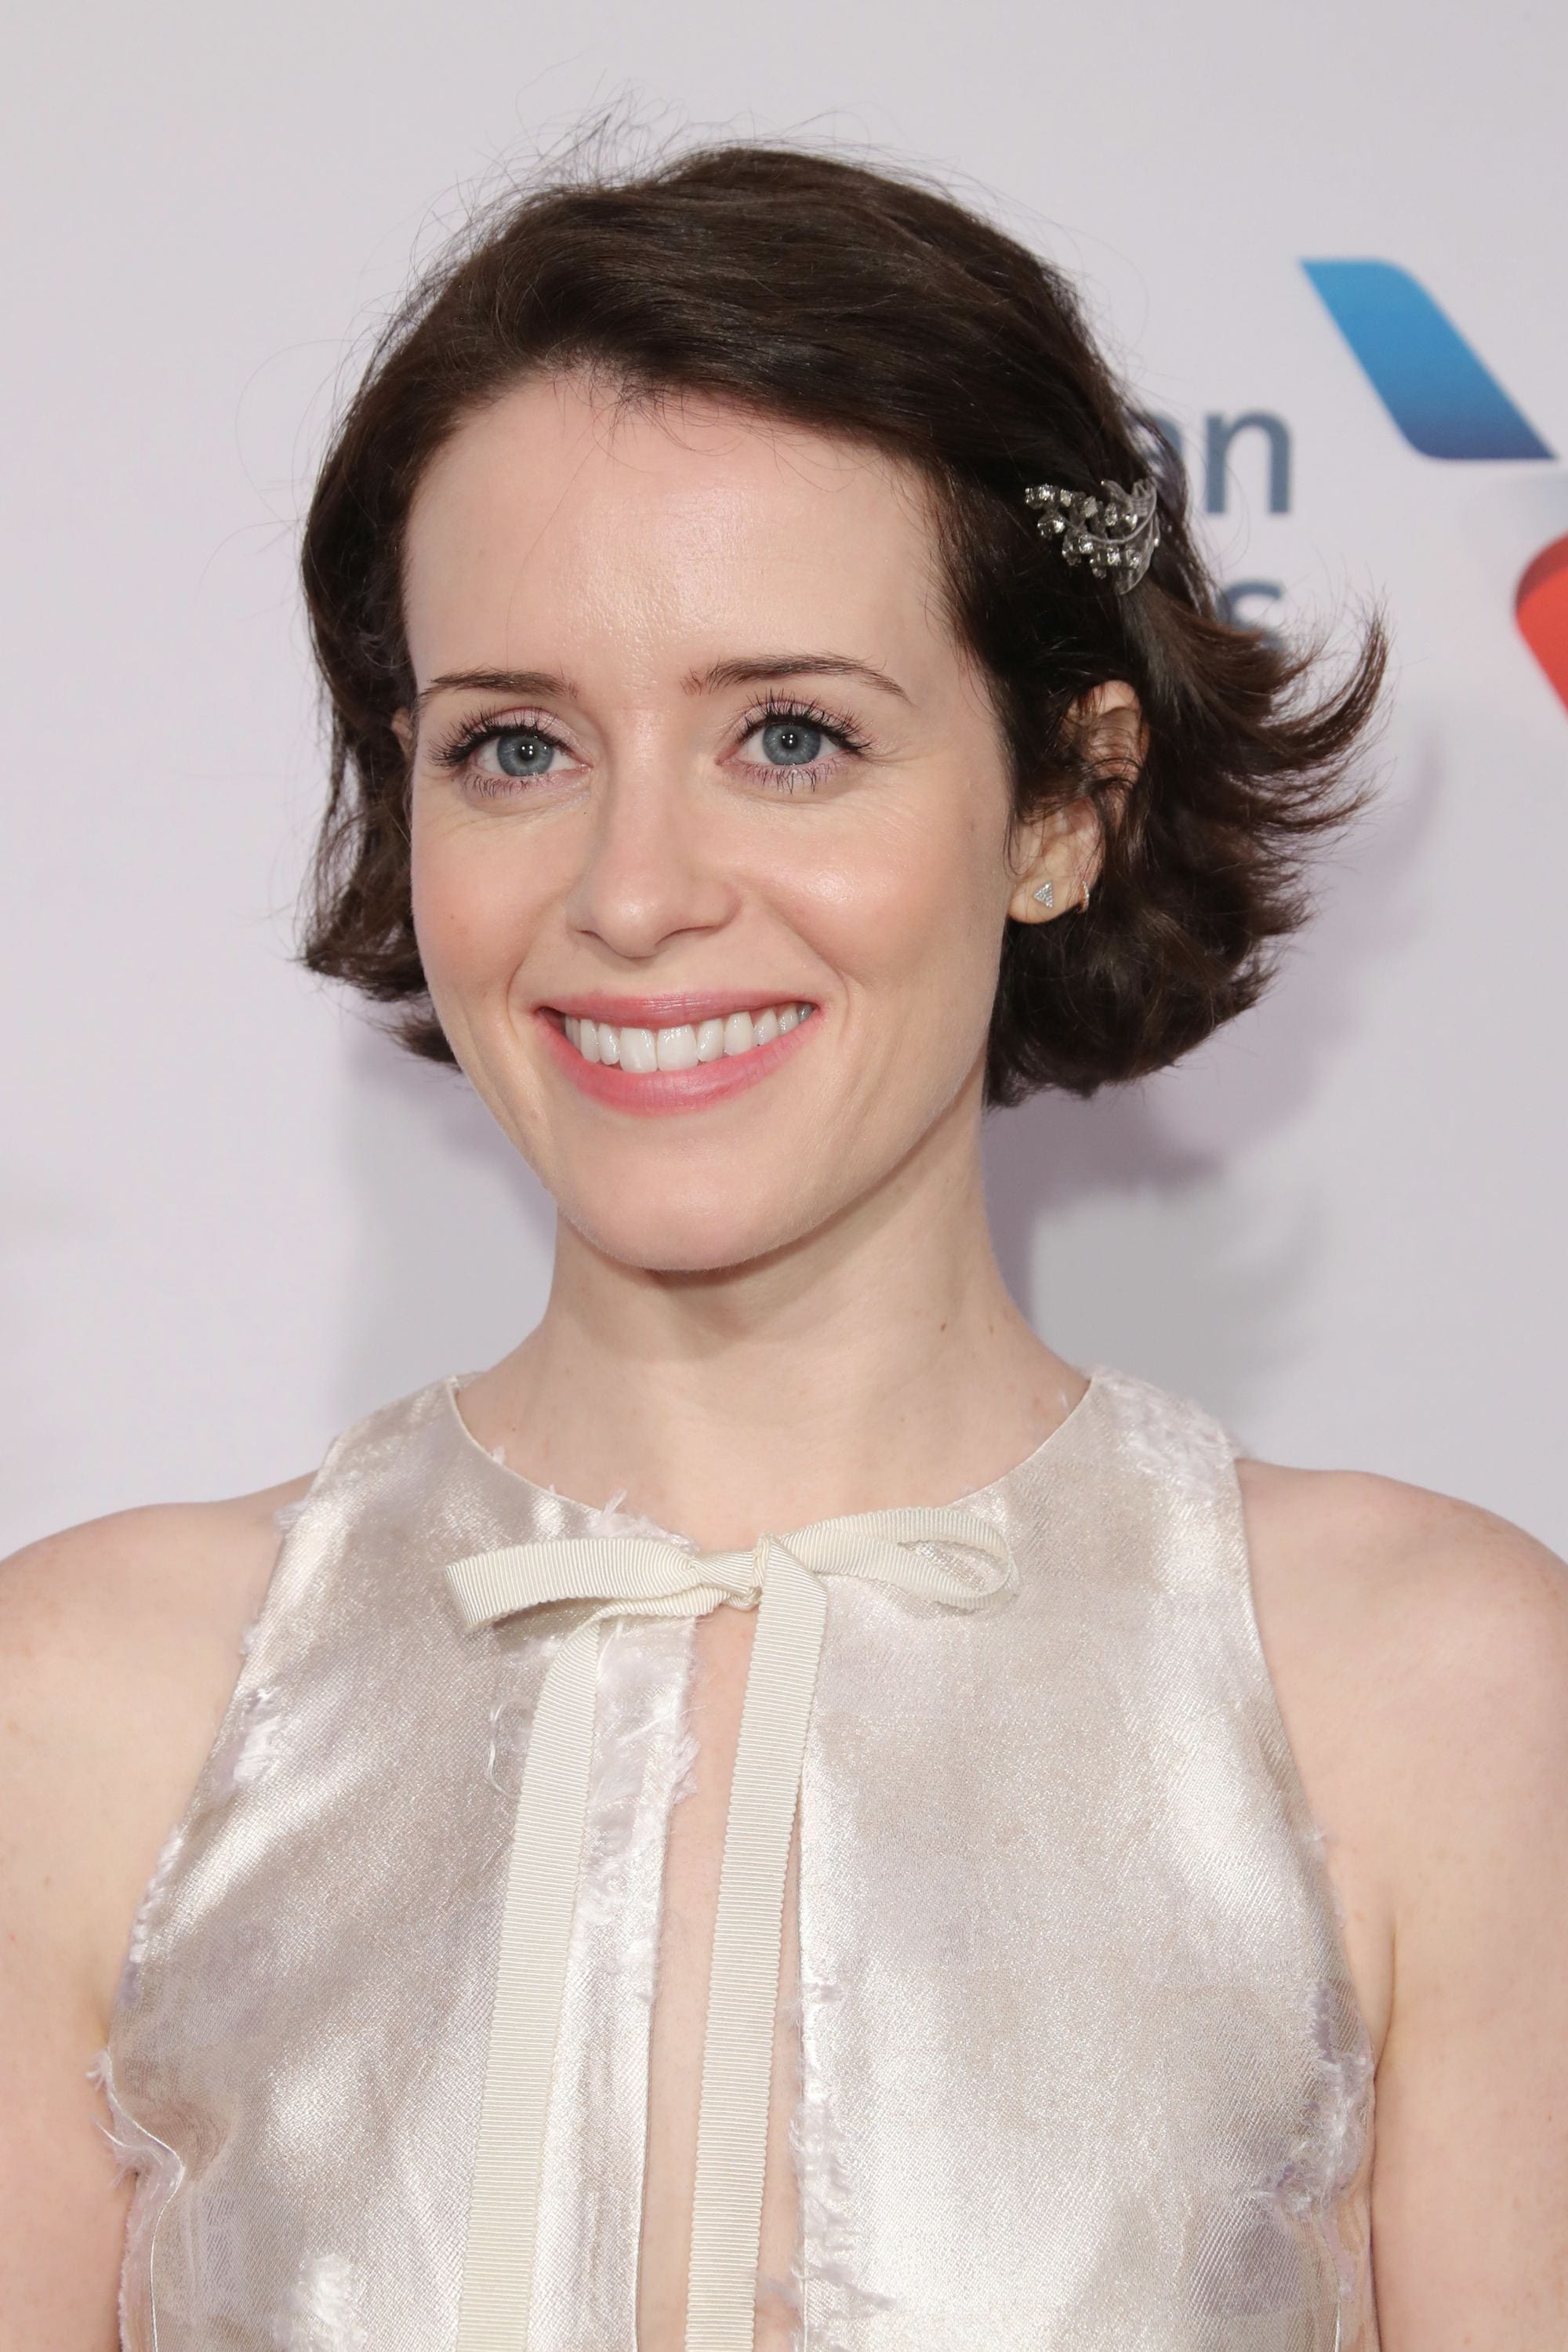 Bob hairstyles: Claire Foy with dark brown choppy chin length bob styled with a barrette